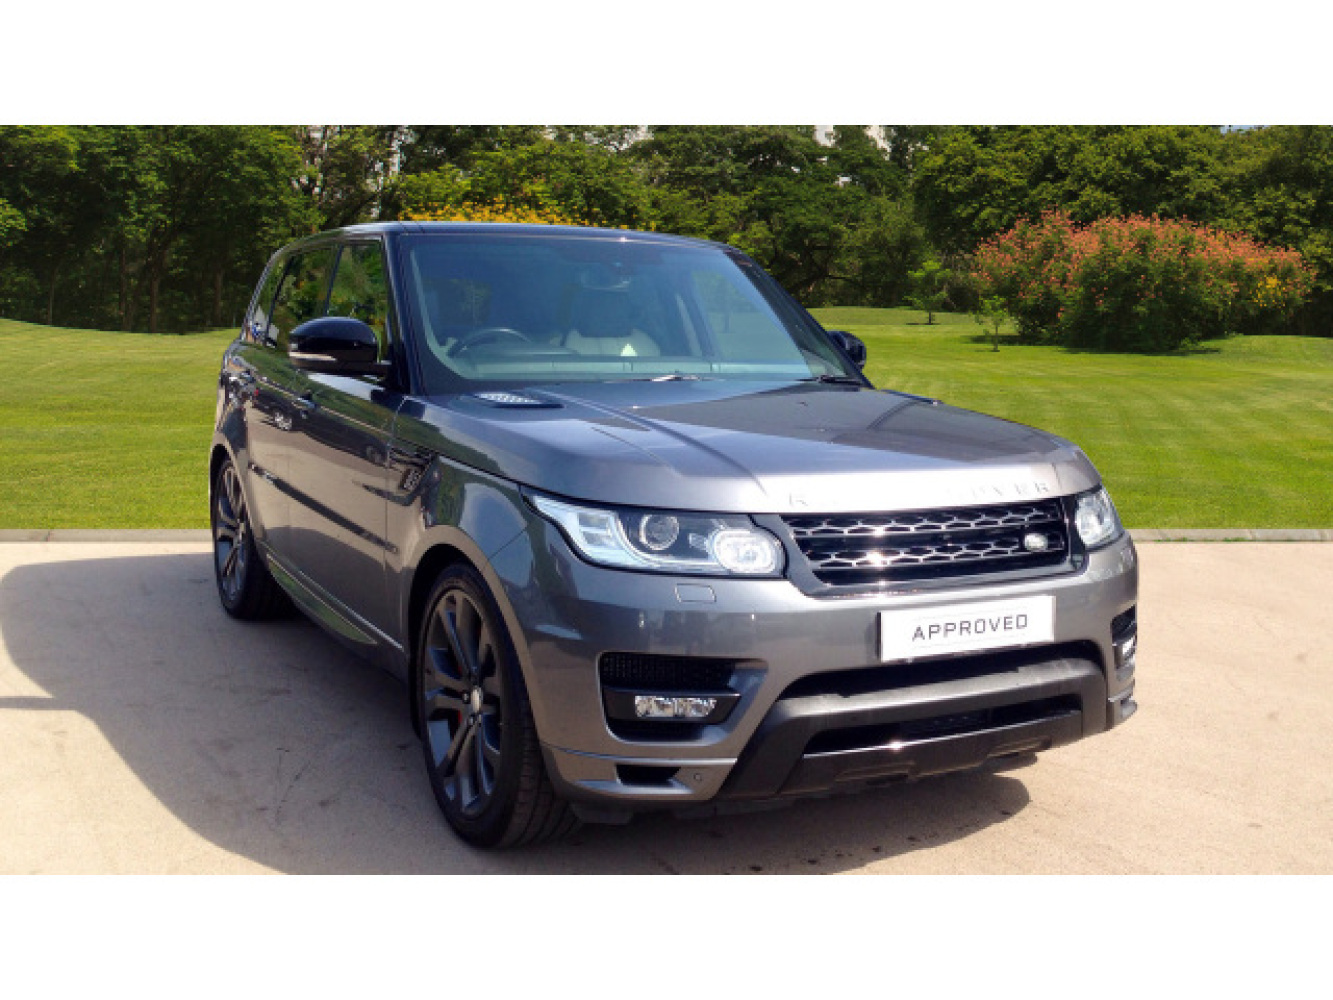 used land rover range rover sport 4 4 sdv8 autobiography dynamic 5dr auto diesel estate for sale. Black Bedroom Furniture Sets. Home Design Ideas